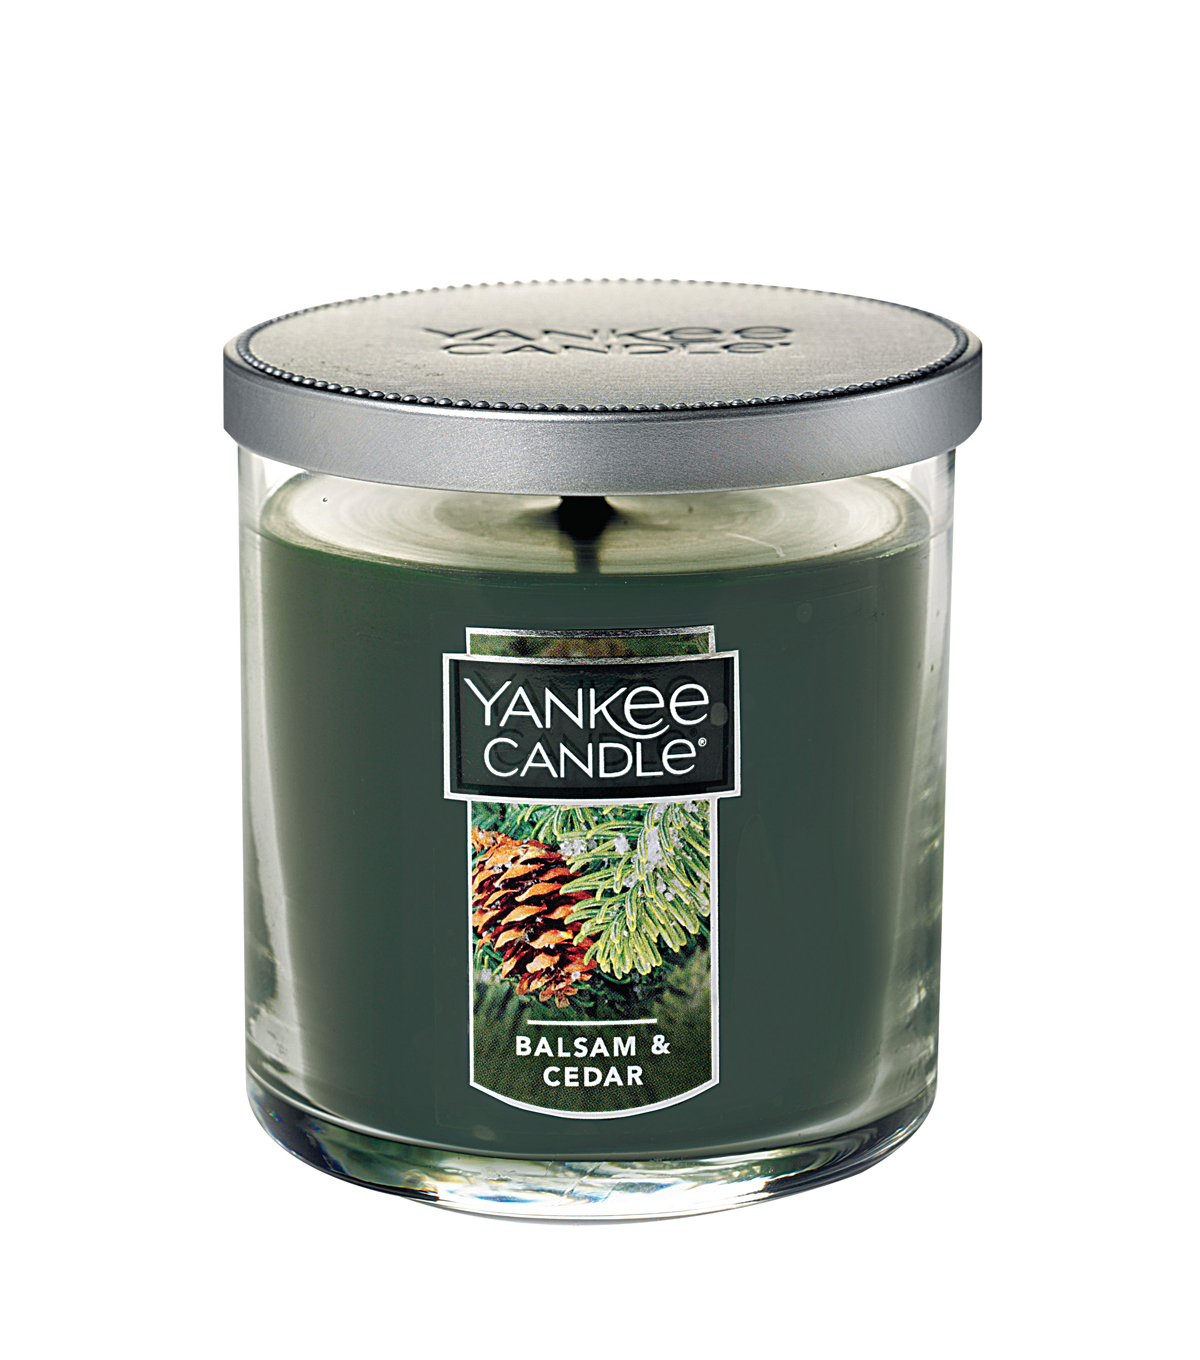 Yankee Candle Small 7 oz. Balsam & Cedar Scented Tumbler Candle